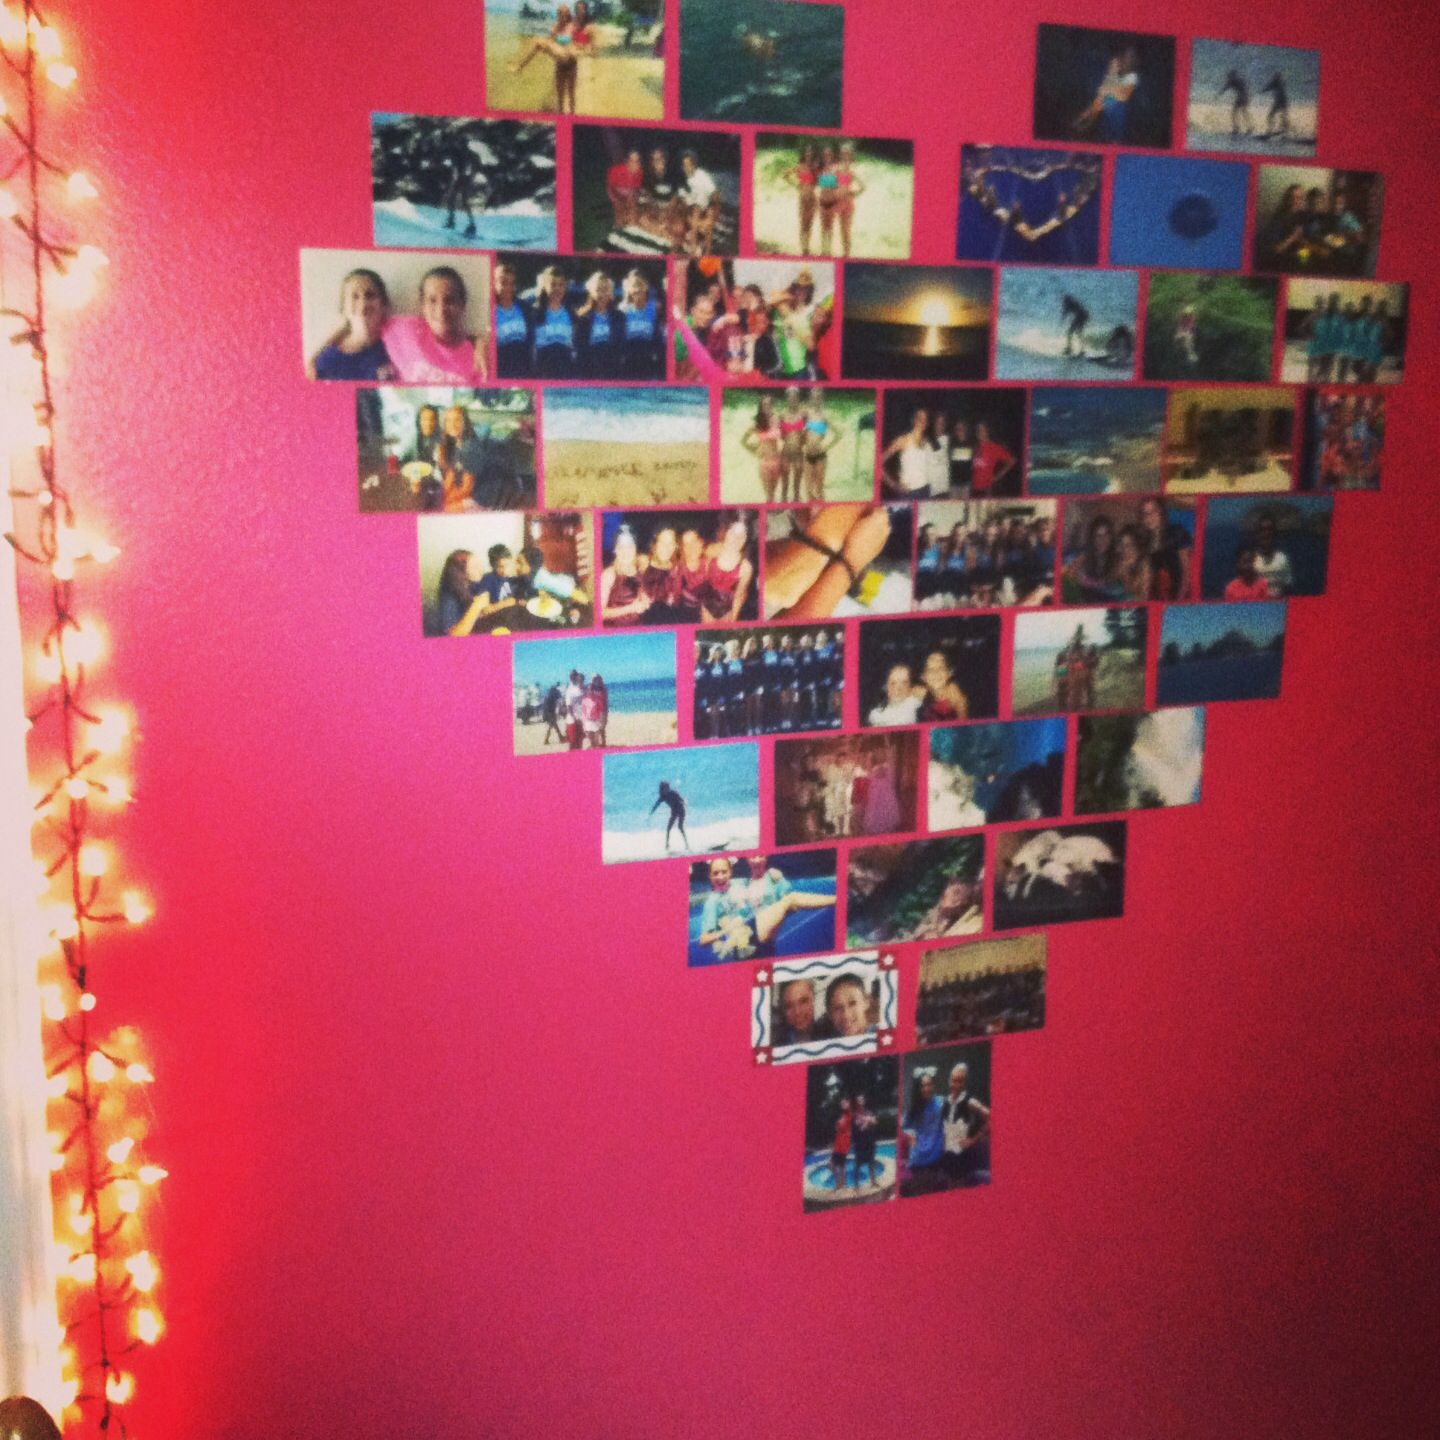 Ideas Originales Para El Hogar Room Picture Heart Diy Room Decor Diy Room Cosas Para